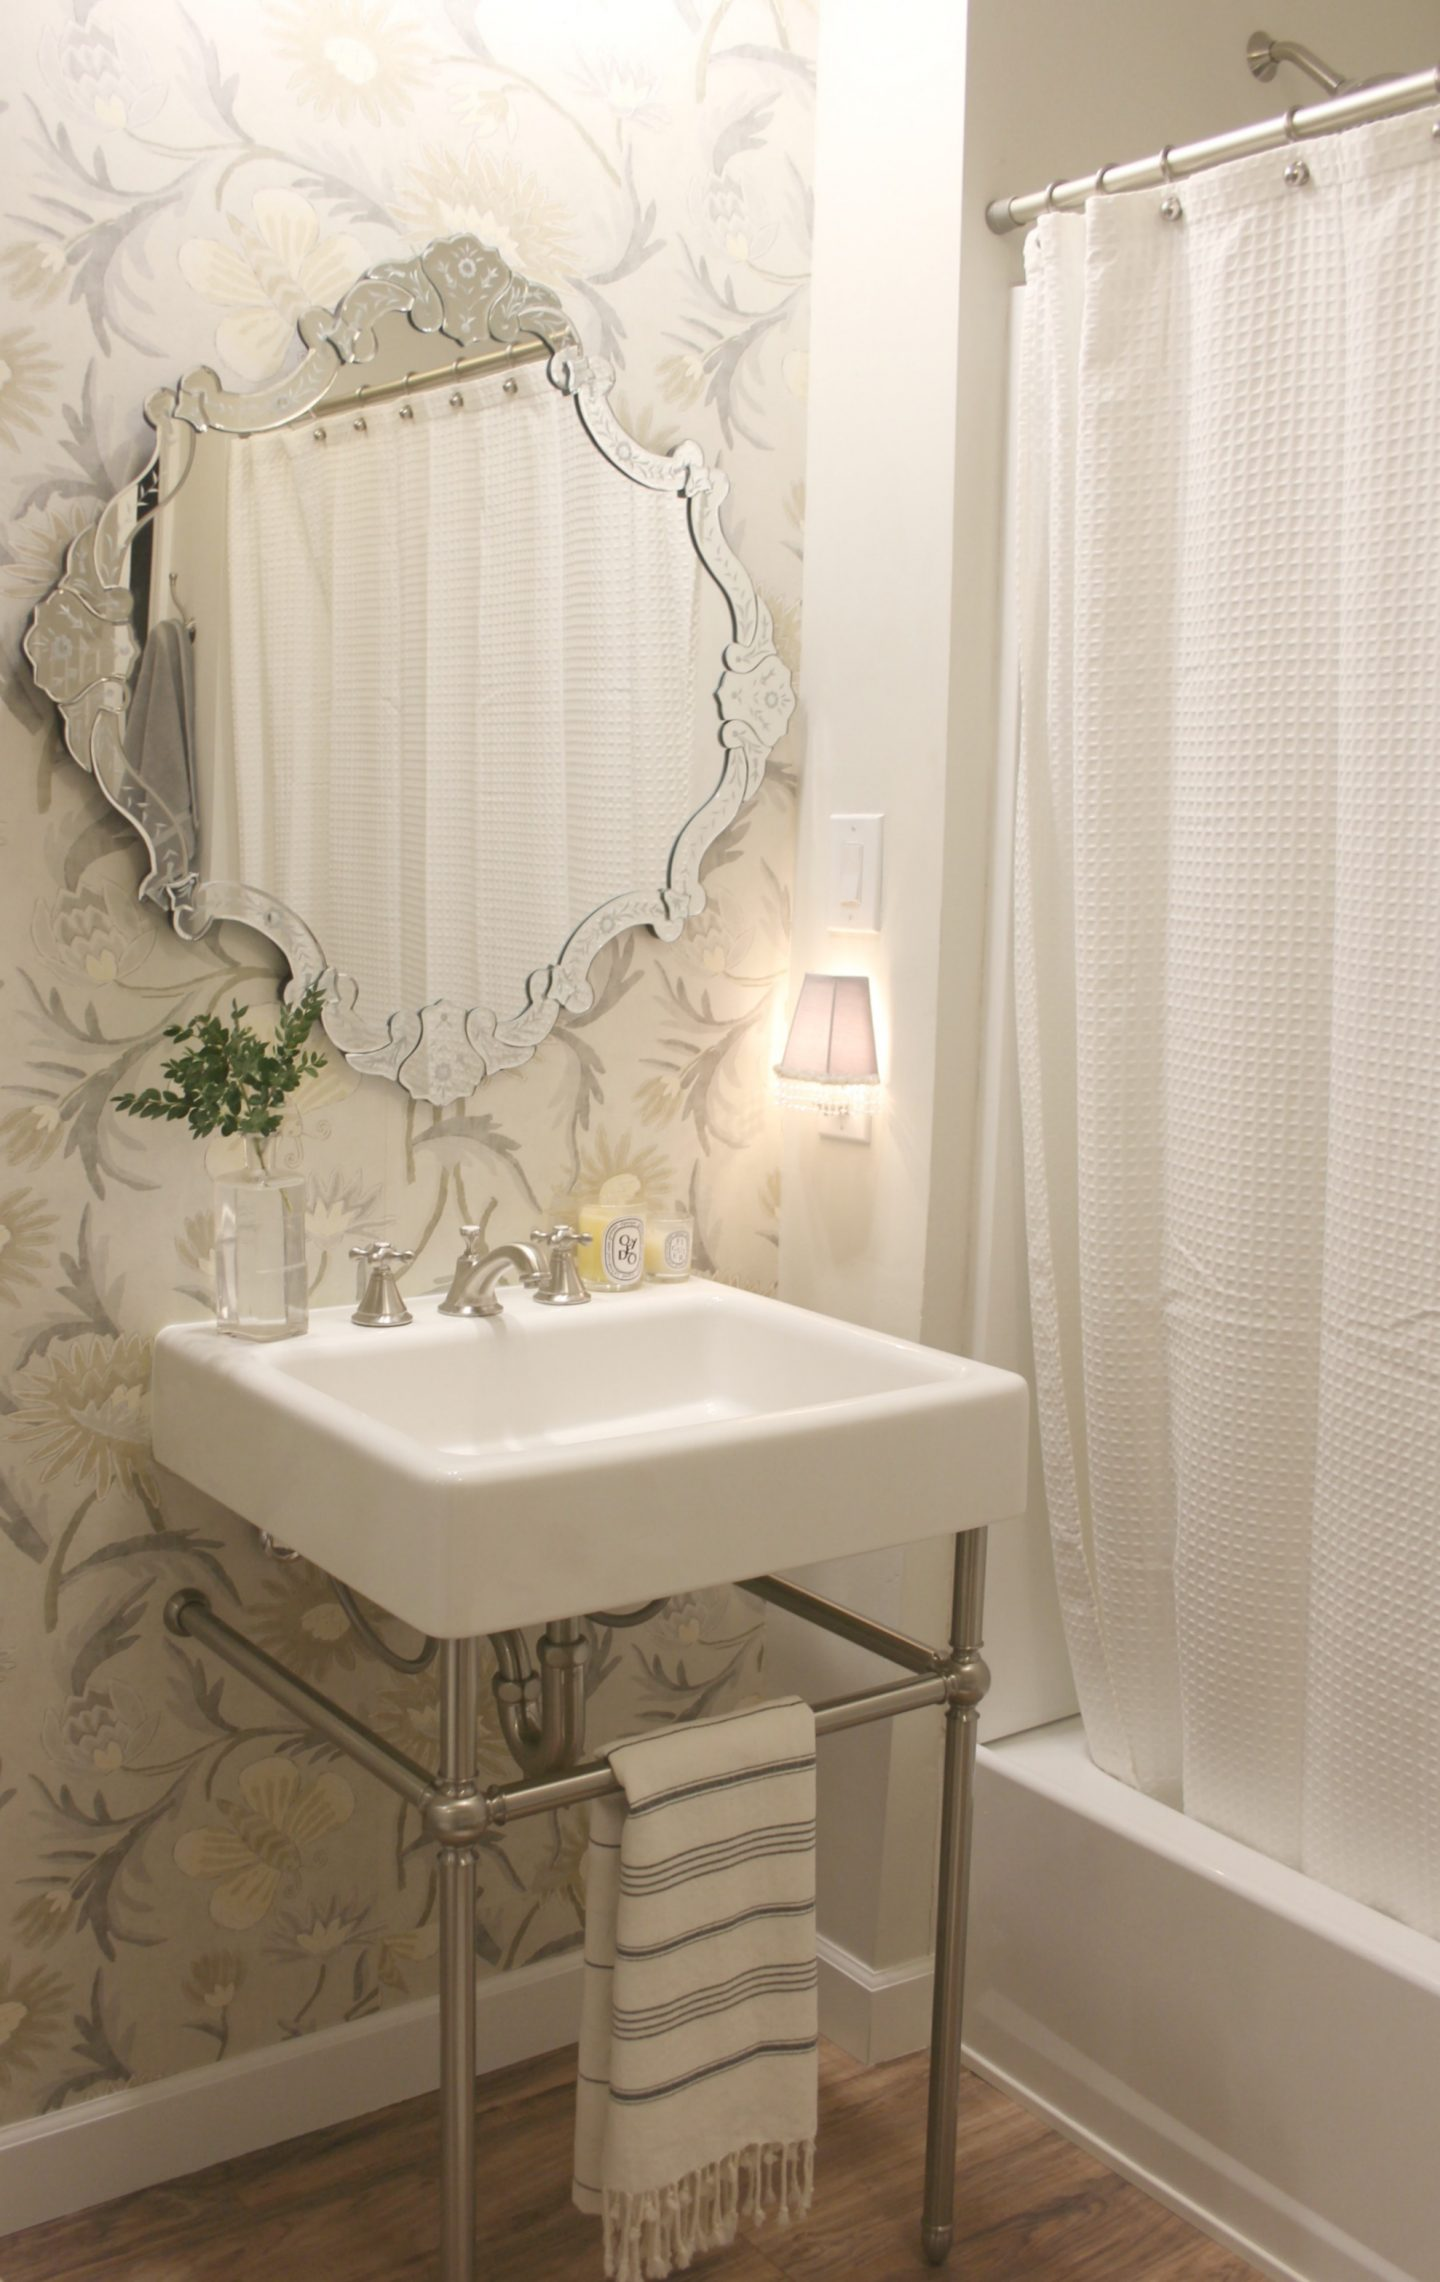 This peaceful, zen white bathroom did not start out like this...come see the dungeon it was! #bathroomrenovation #DIYhome #beforeandafter #bathroomdecor